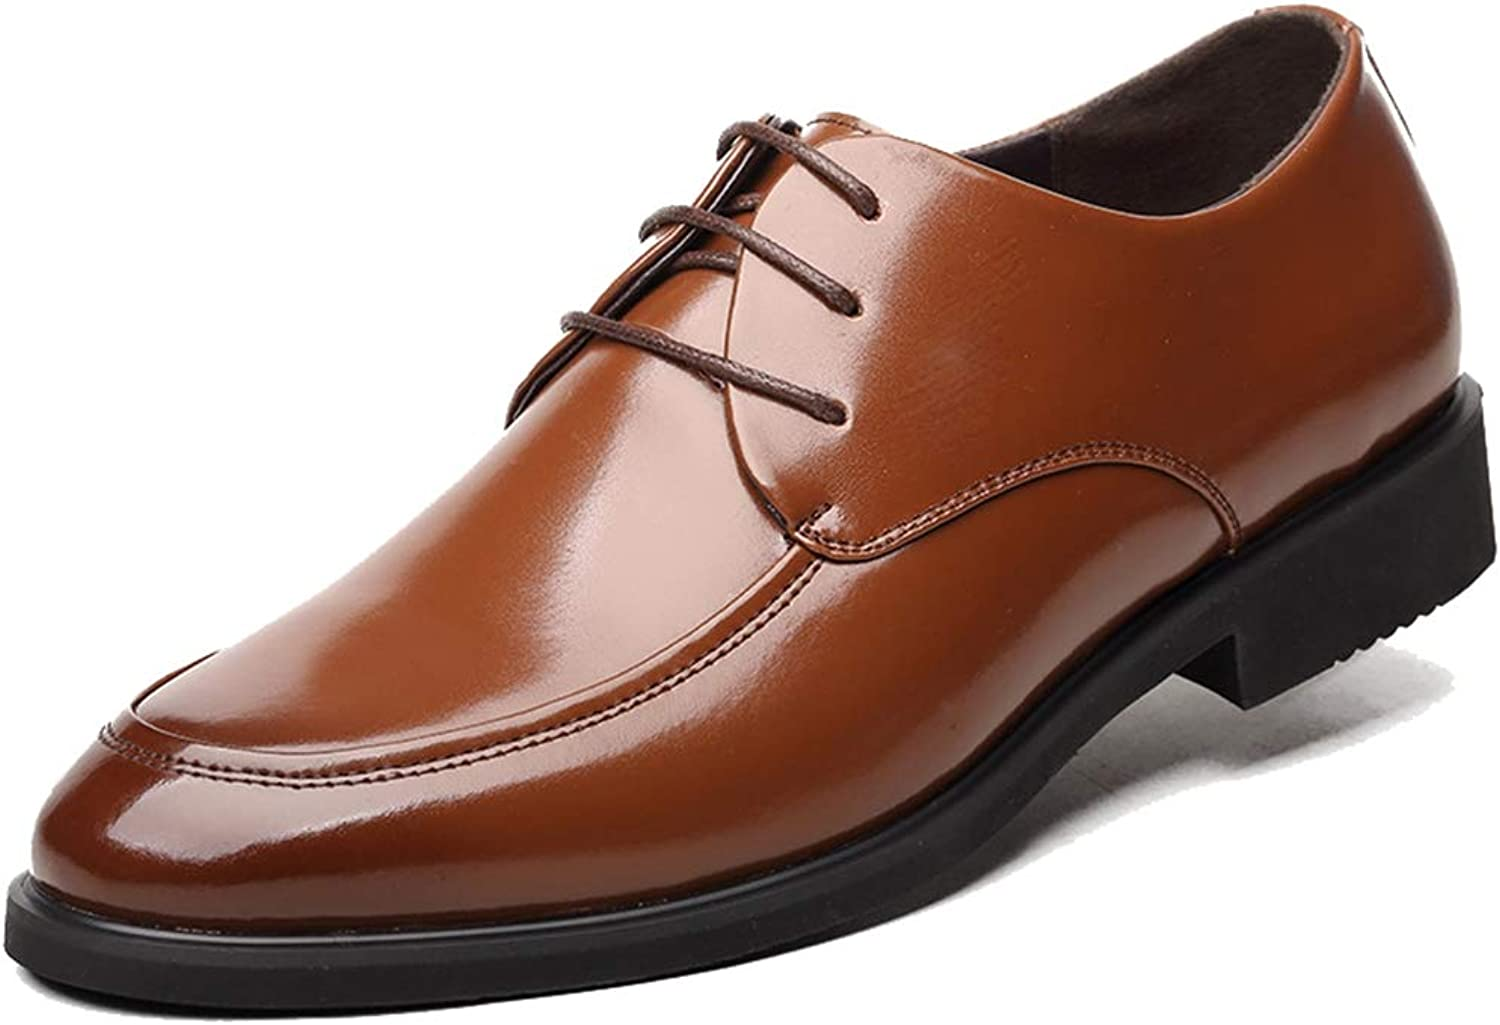 Phil Betty Mens Oxford shoes Breathable Lace Up Fashion Business Casual Formal shoes